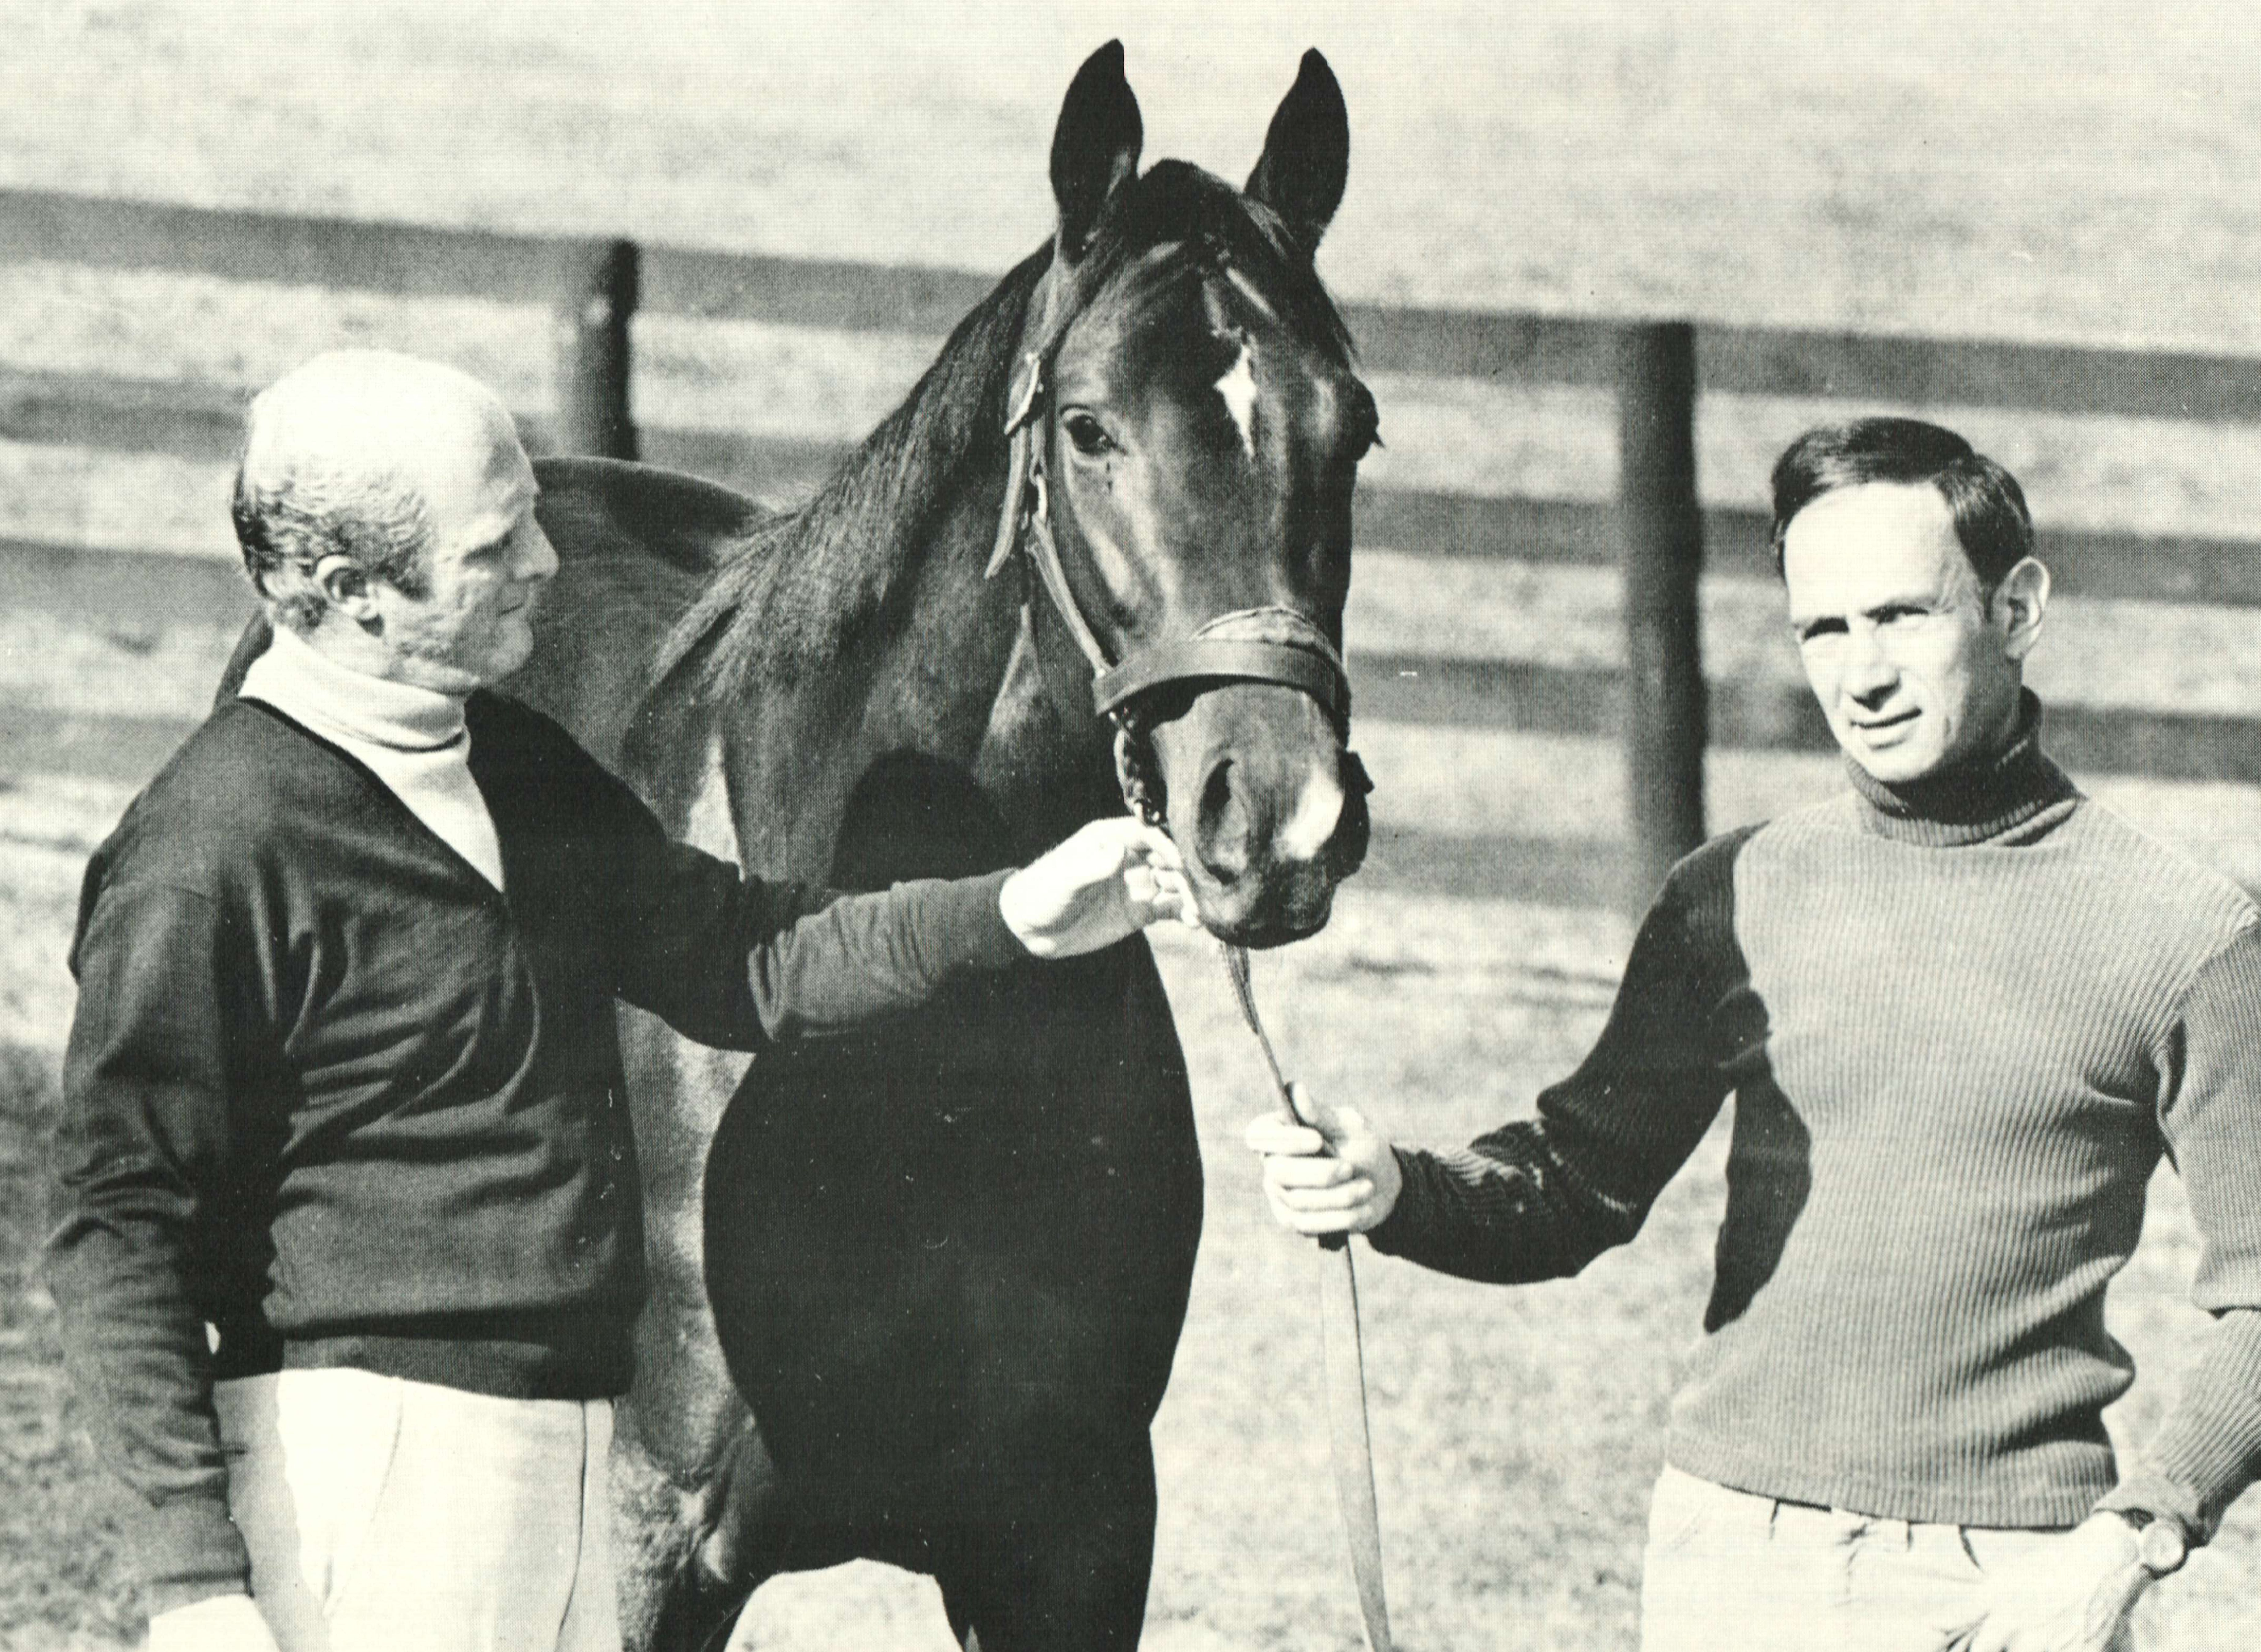 LeRoy Jolley, left, with Honest Pleasure and Bert Firestone (The BloodHorse)